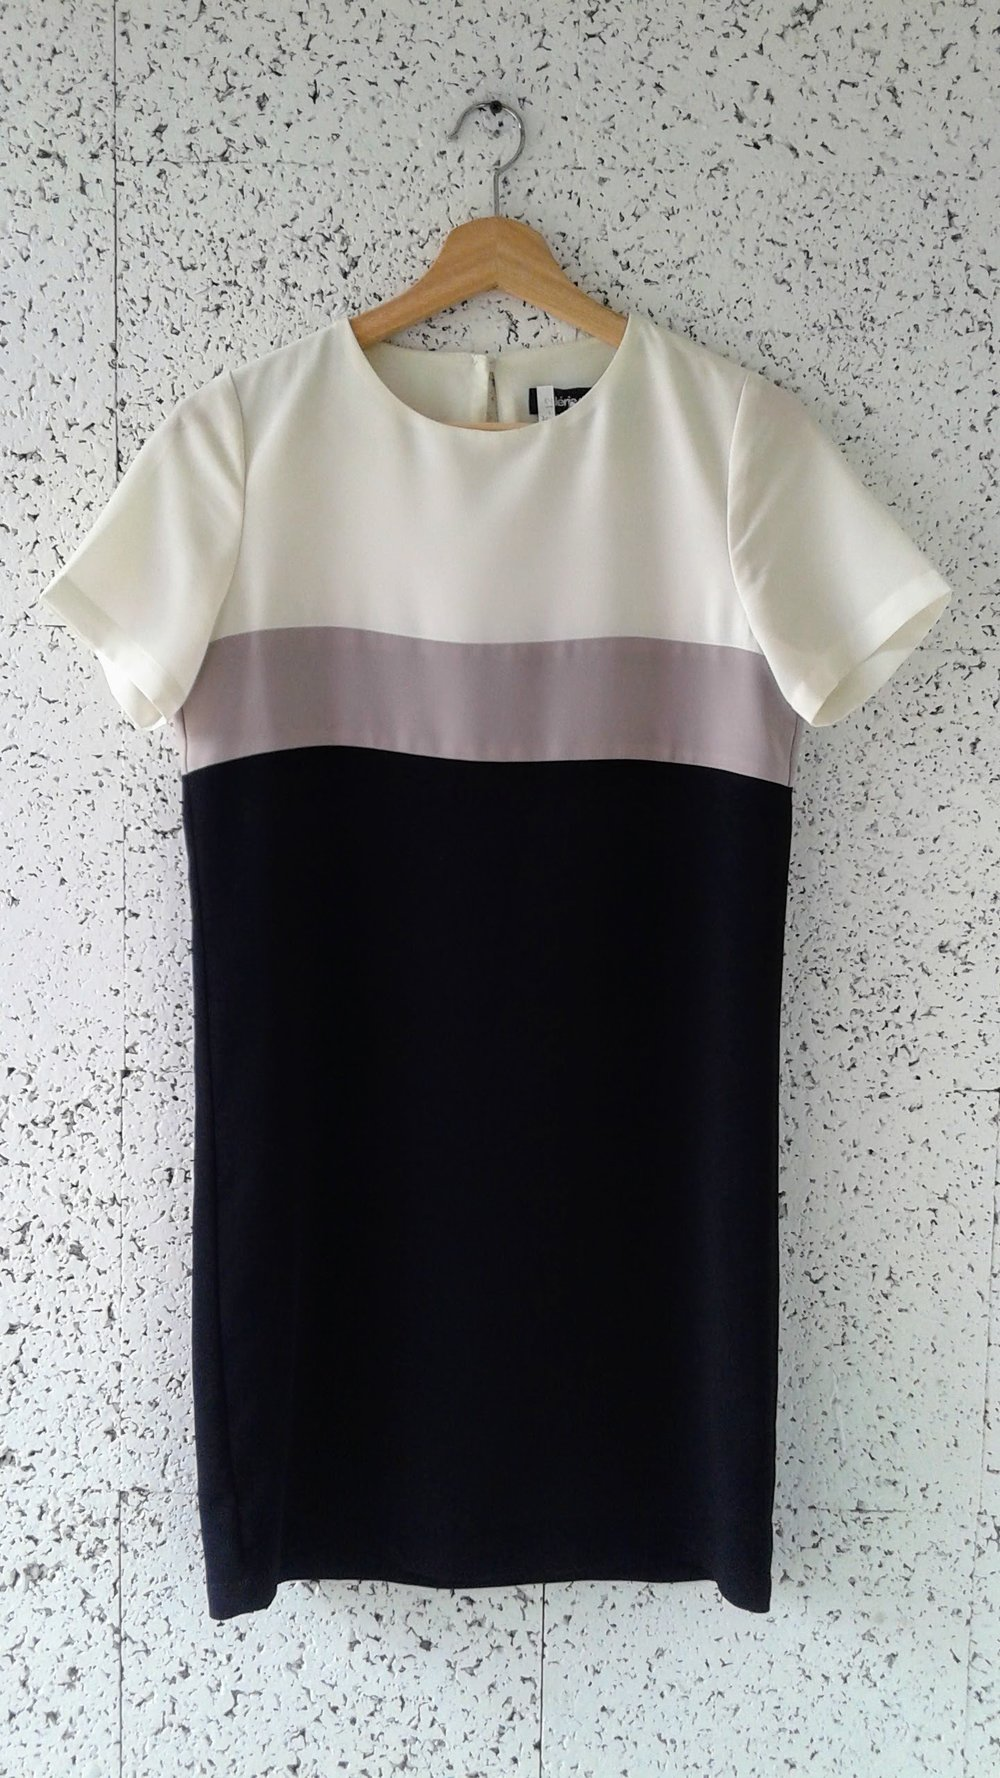 Valerie Dumaine dress; Size XS, $56